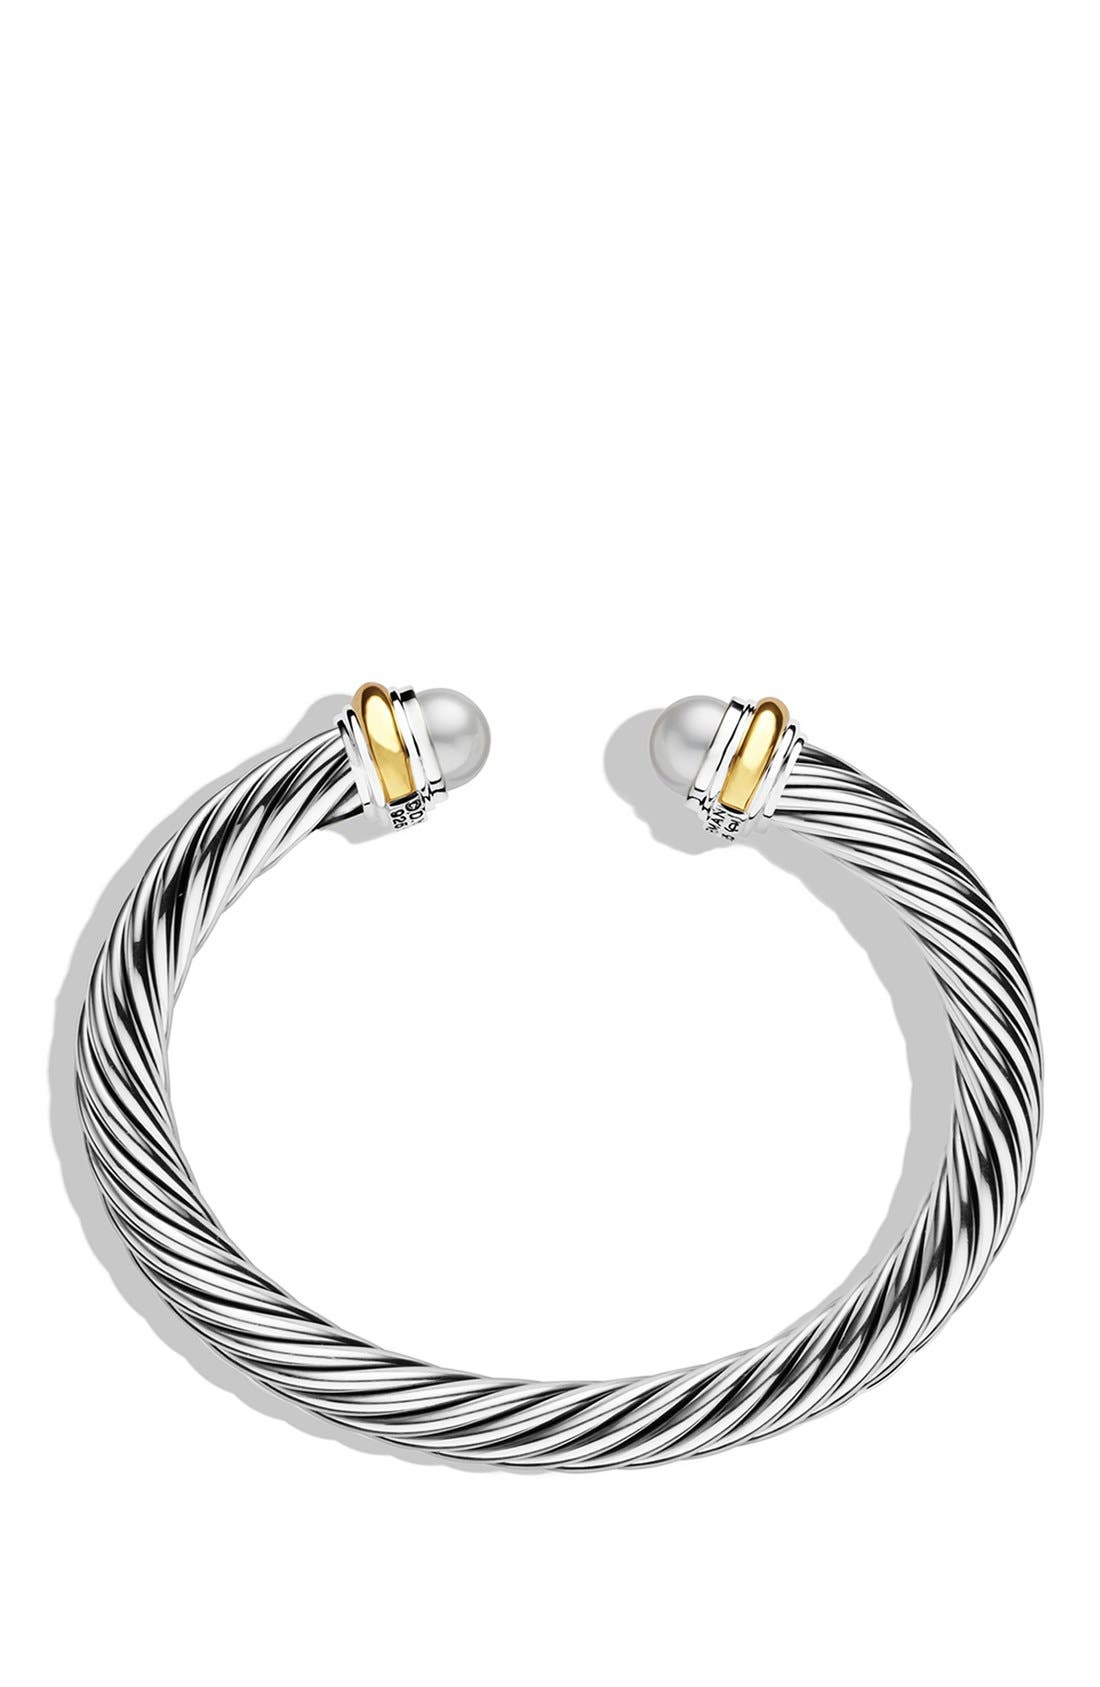 Cable Classics Bracelet with Semiprecious Stones & 14K Gold, 7mm,                             Alternate thumbnail 2, color,                             Pearl